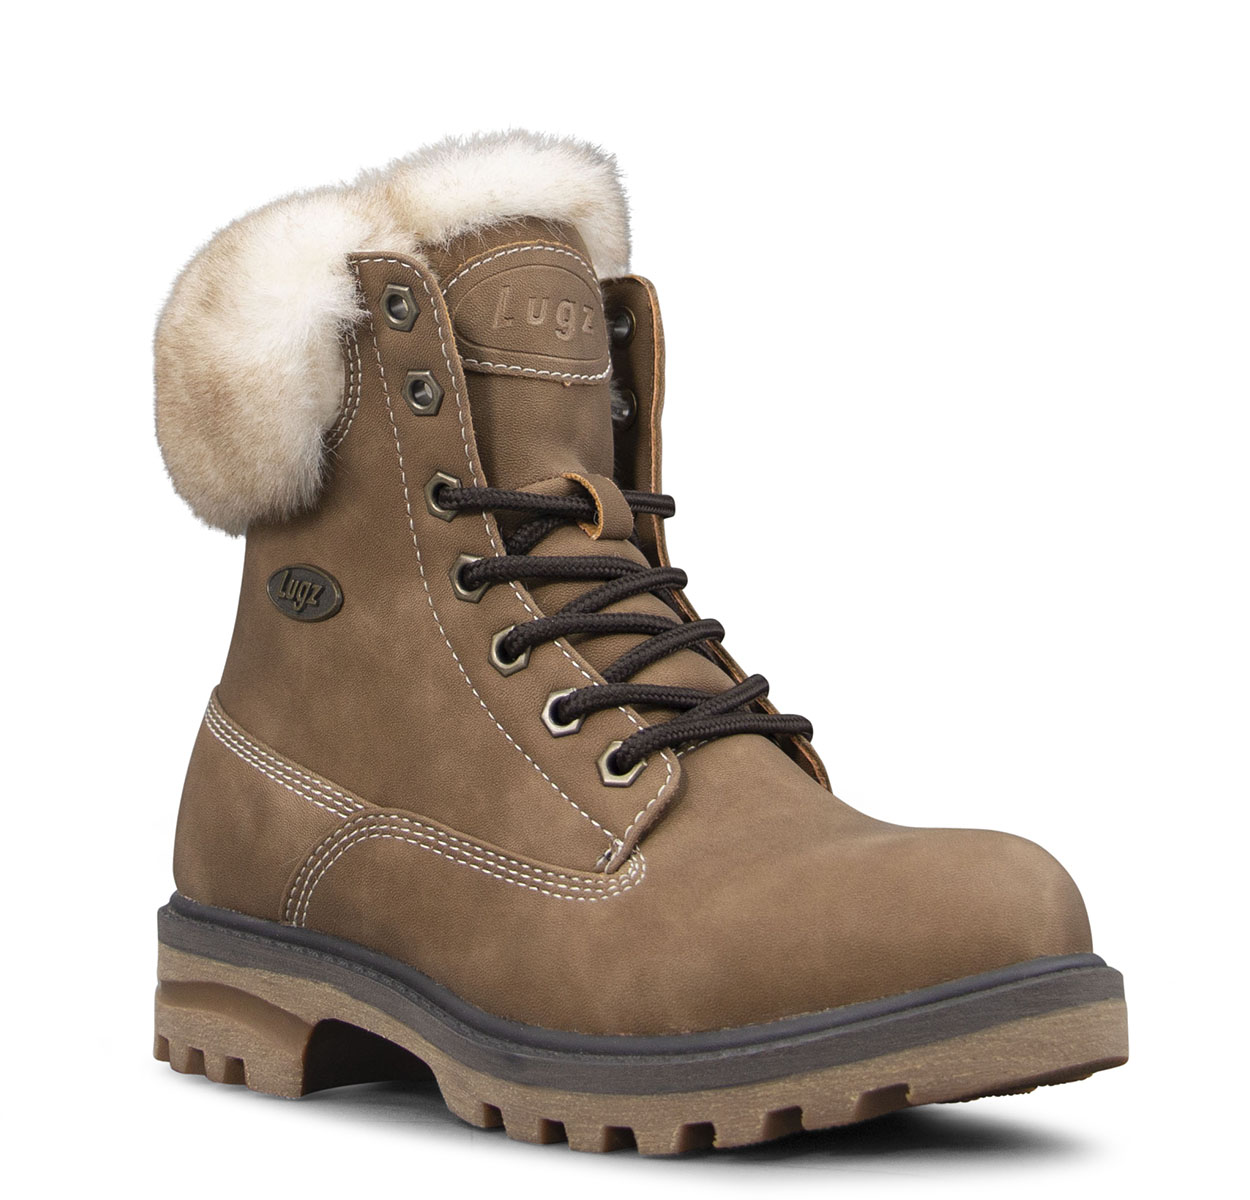 Women's Empire Hi Fur 6-Inch Boot (Choose Your Color: GUMNUT/CREAM/BARK, Choose Your Size: 9.0)